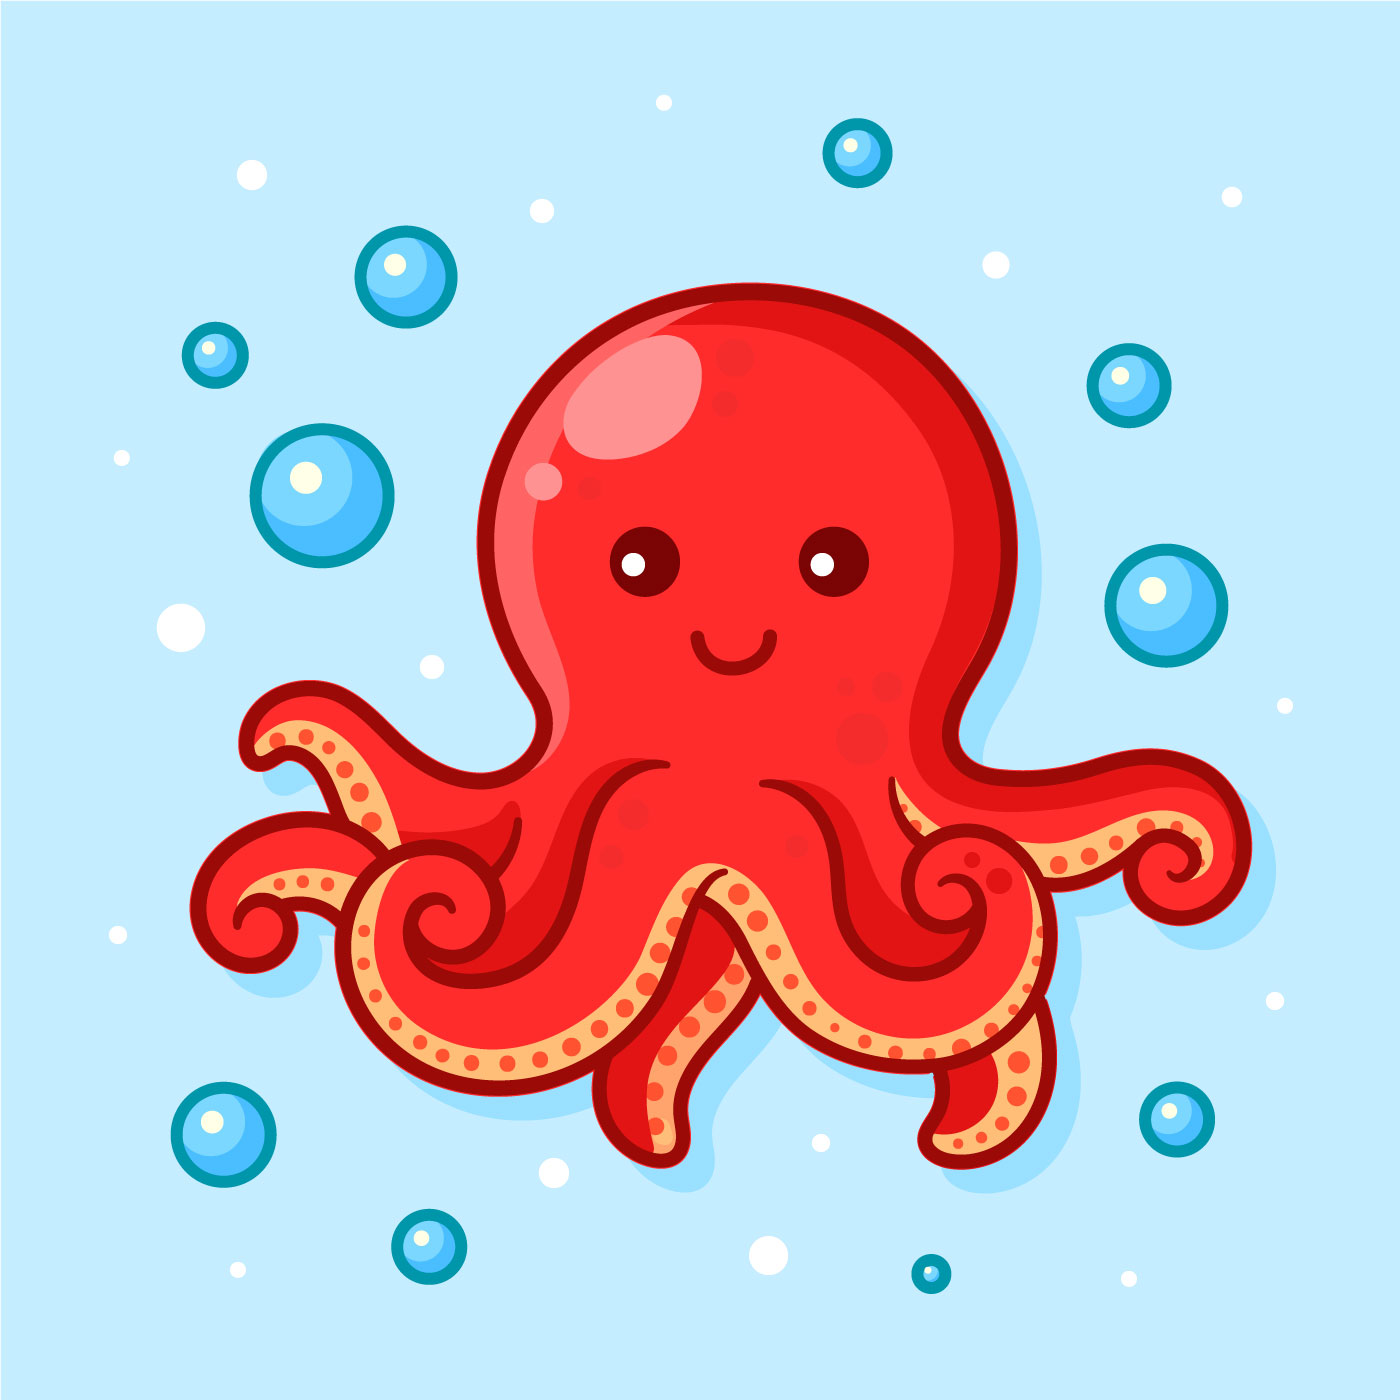 Cute Octopus Vector Illustration - Download Free Vectors ...